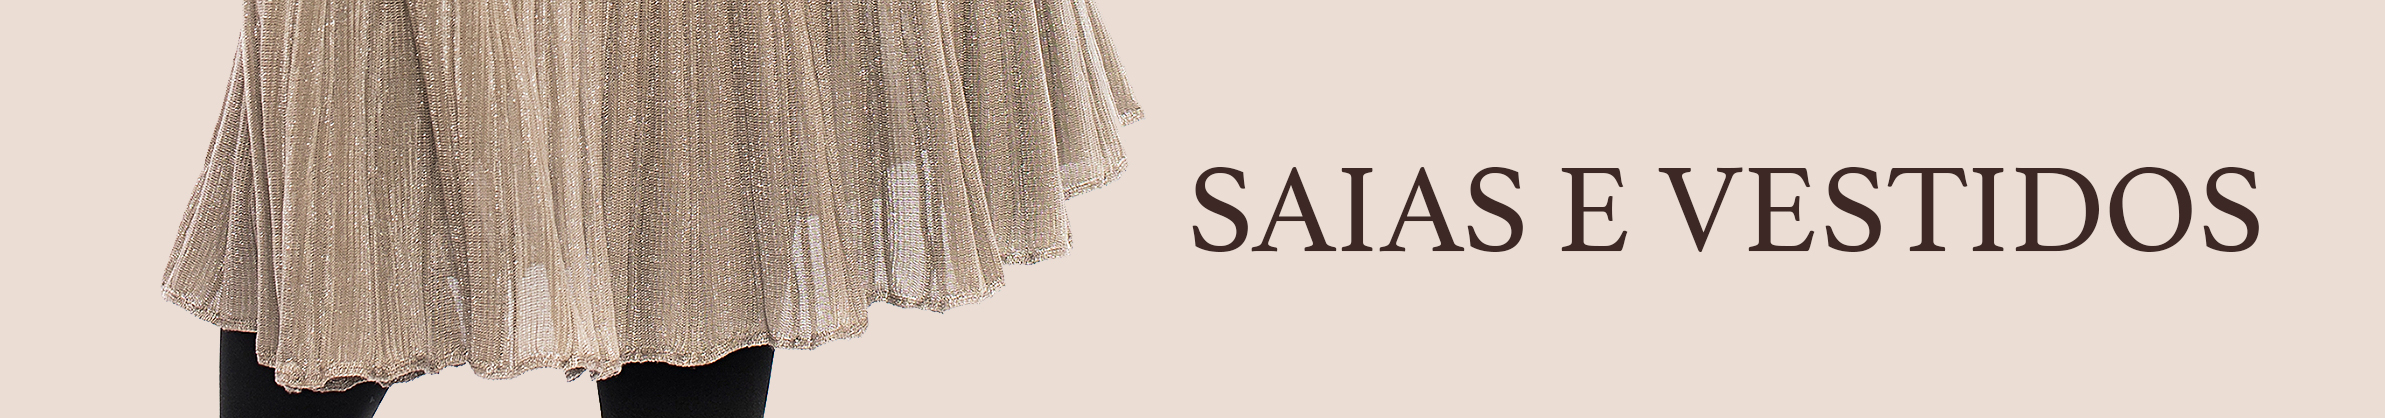 Saias, Vest Leggings e Vestidos